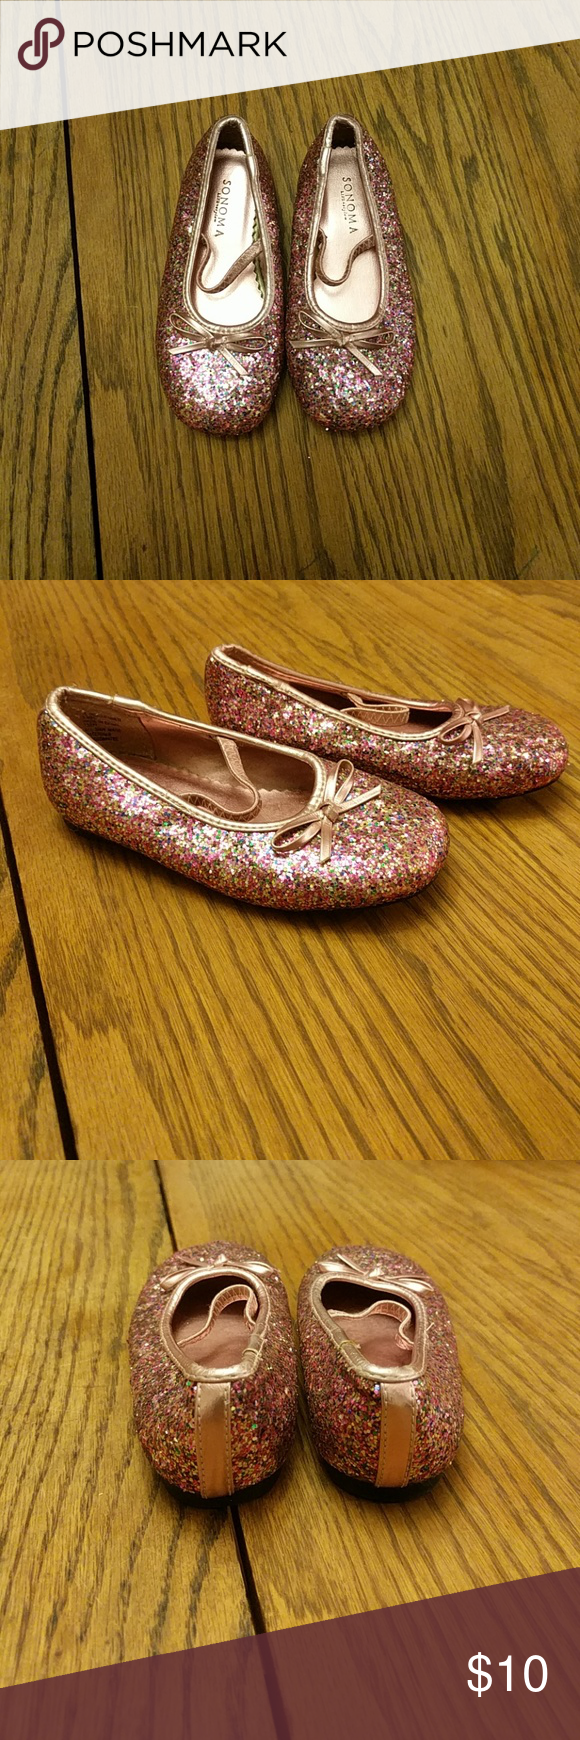 Sonoma slippers! Super cute, barely worn, too cute not to post glitter slippers! Shoes